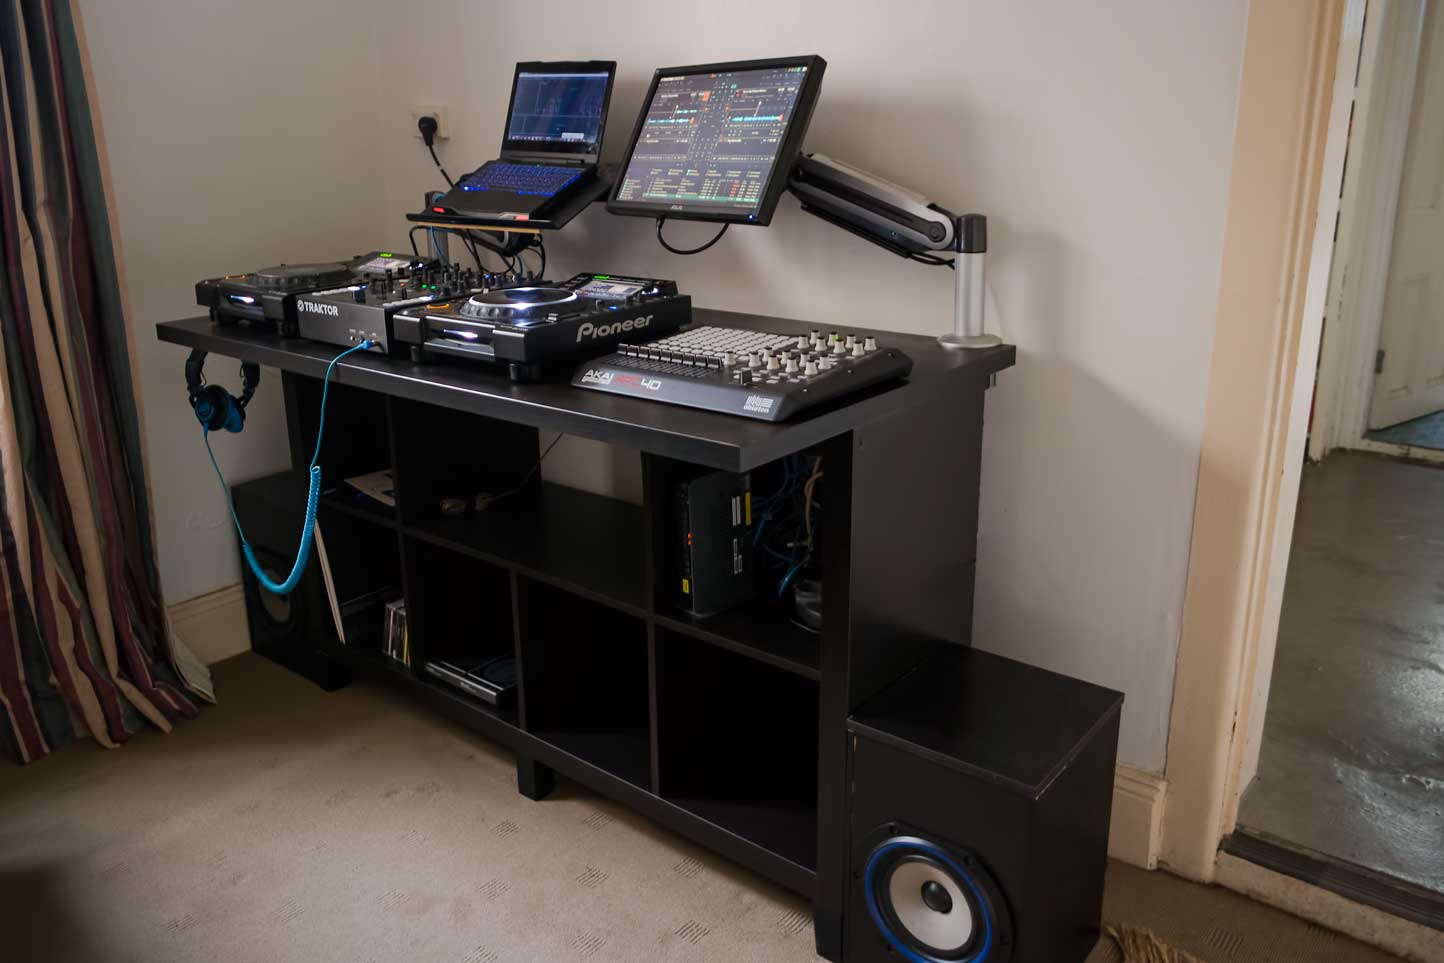 diy ikea dj booth interesting table on wheels with diy ikea dj booth image result for dj stand. Black Bedroom Furniture Sets. Home Design Ideas